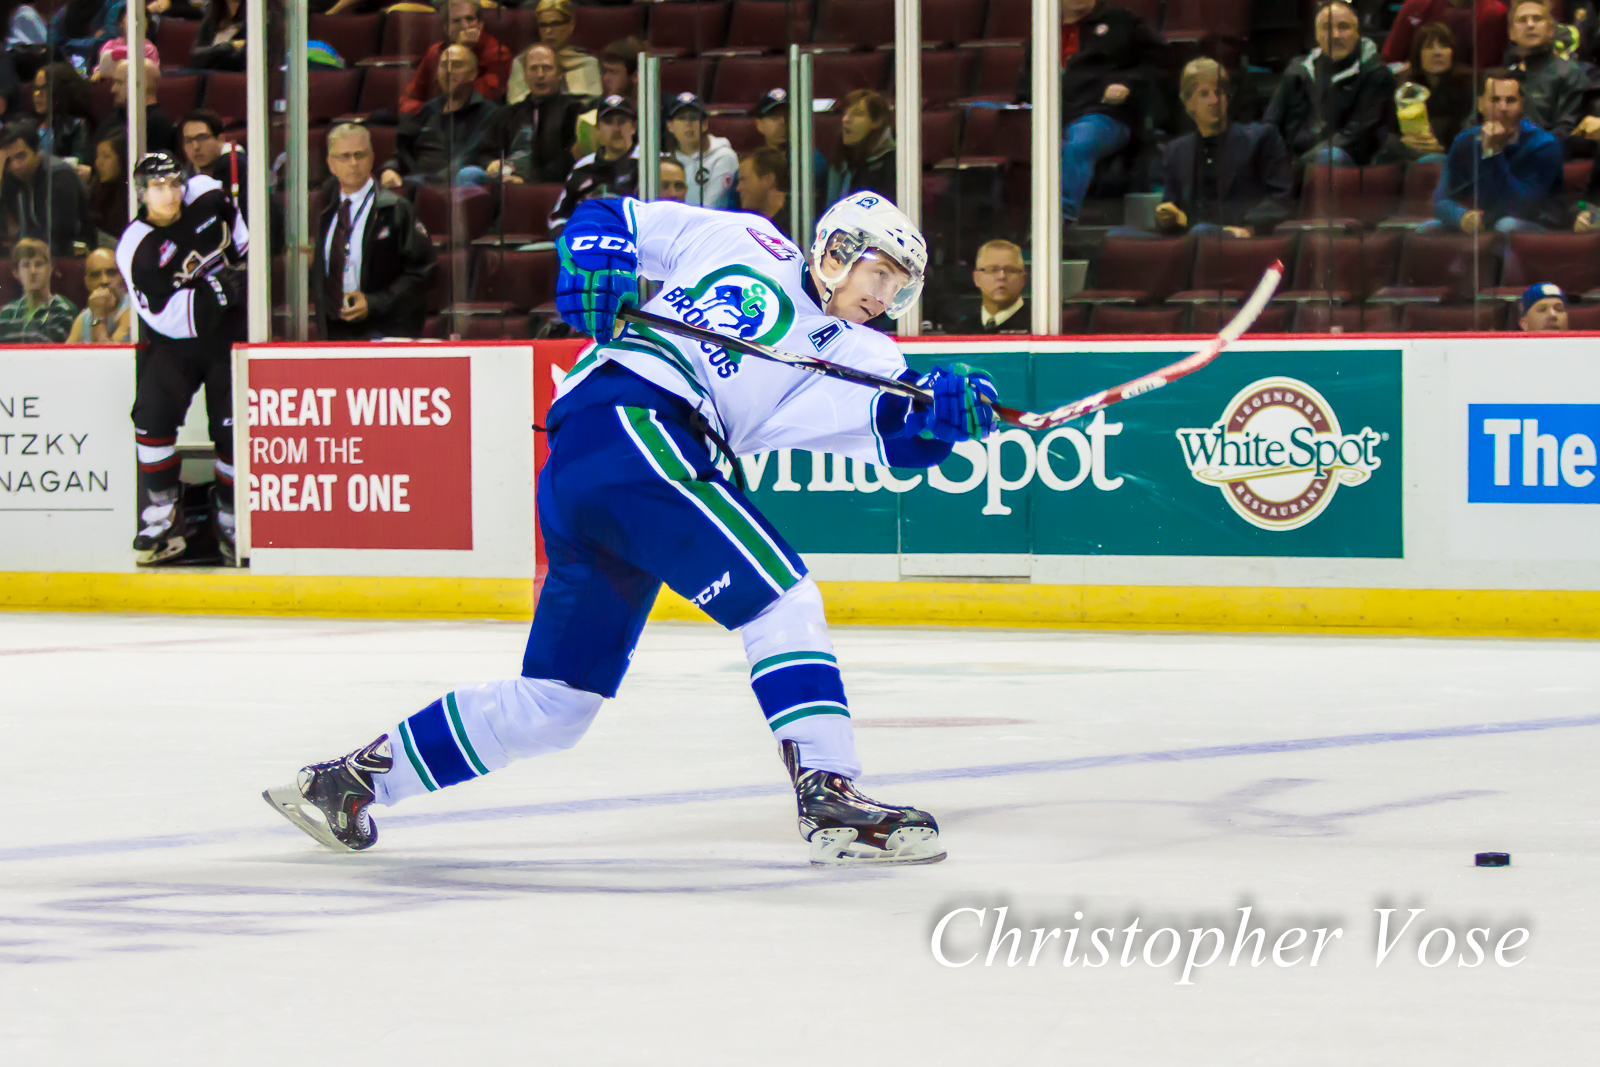 2014-10-03 Dillon Heatherington 1.jpg